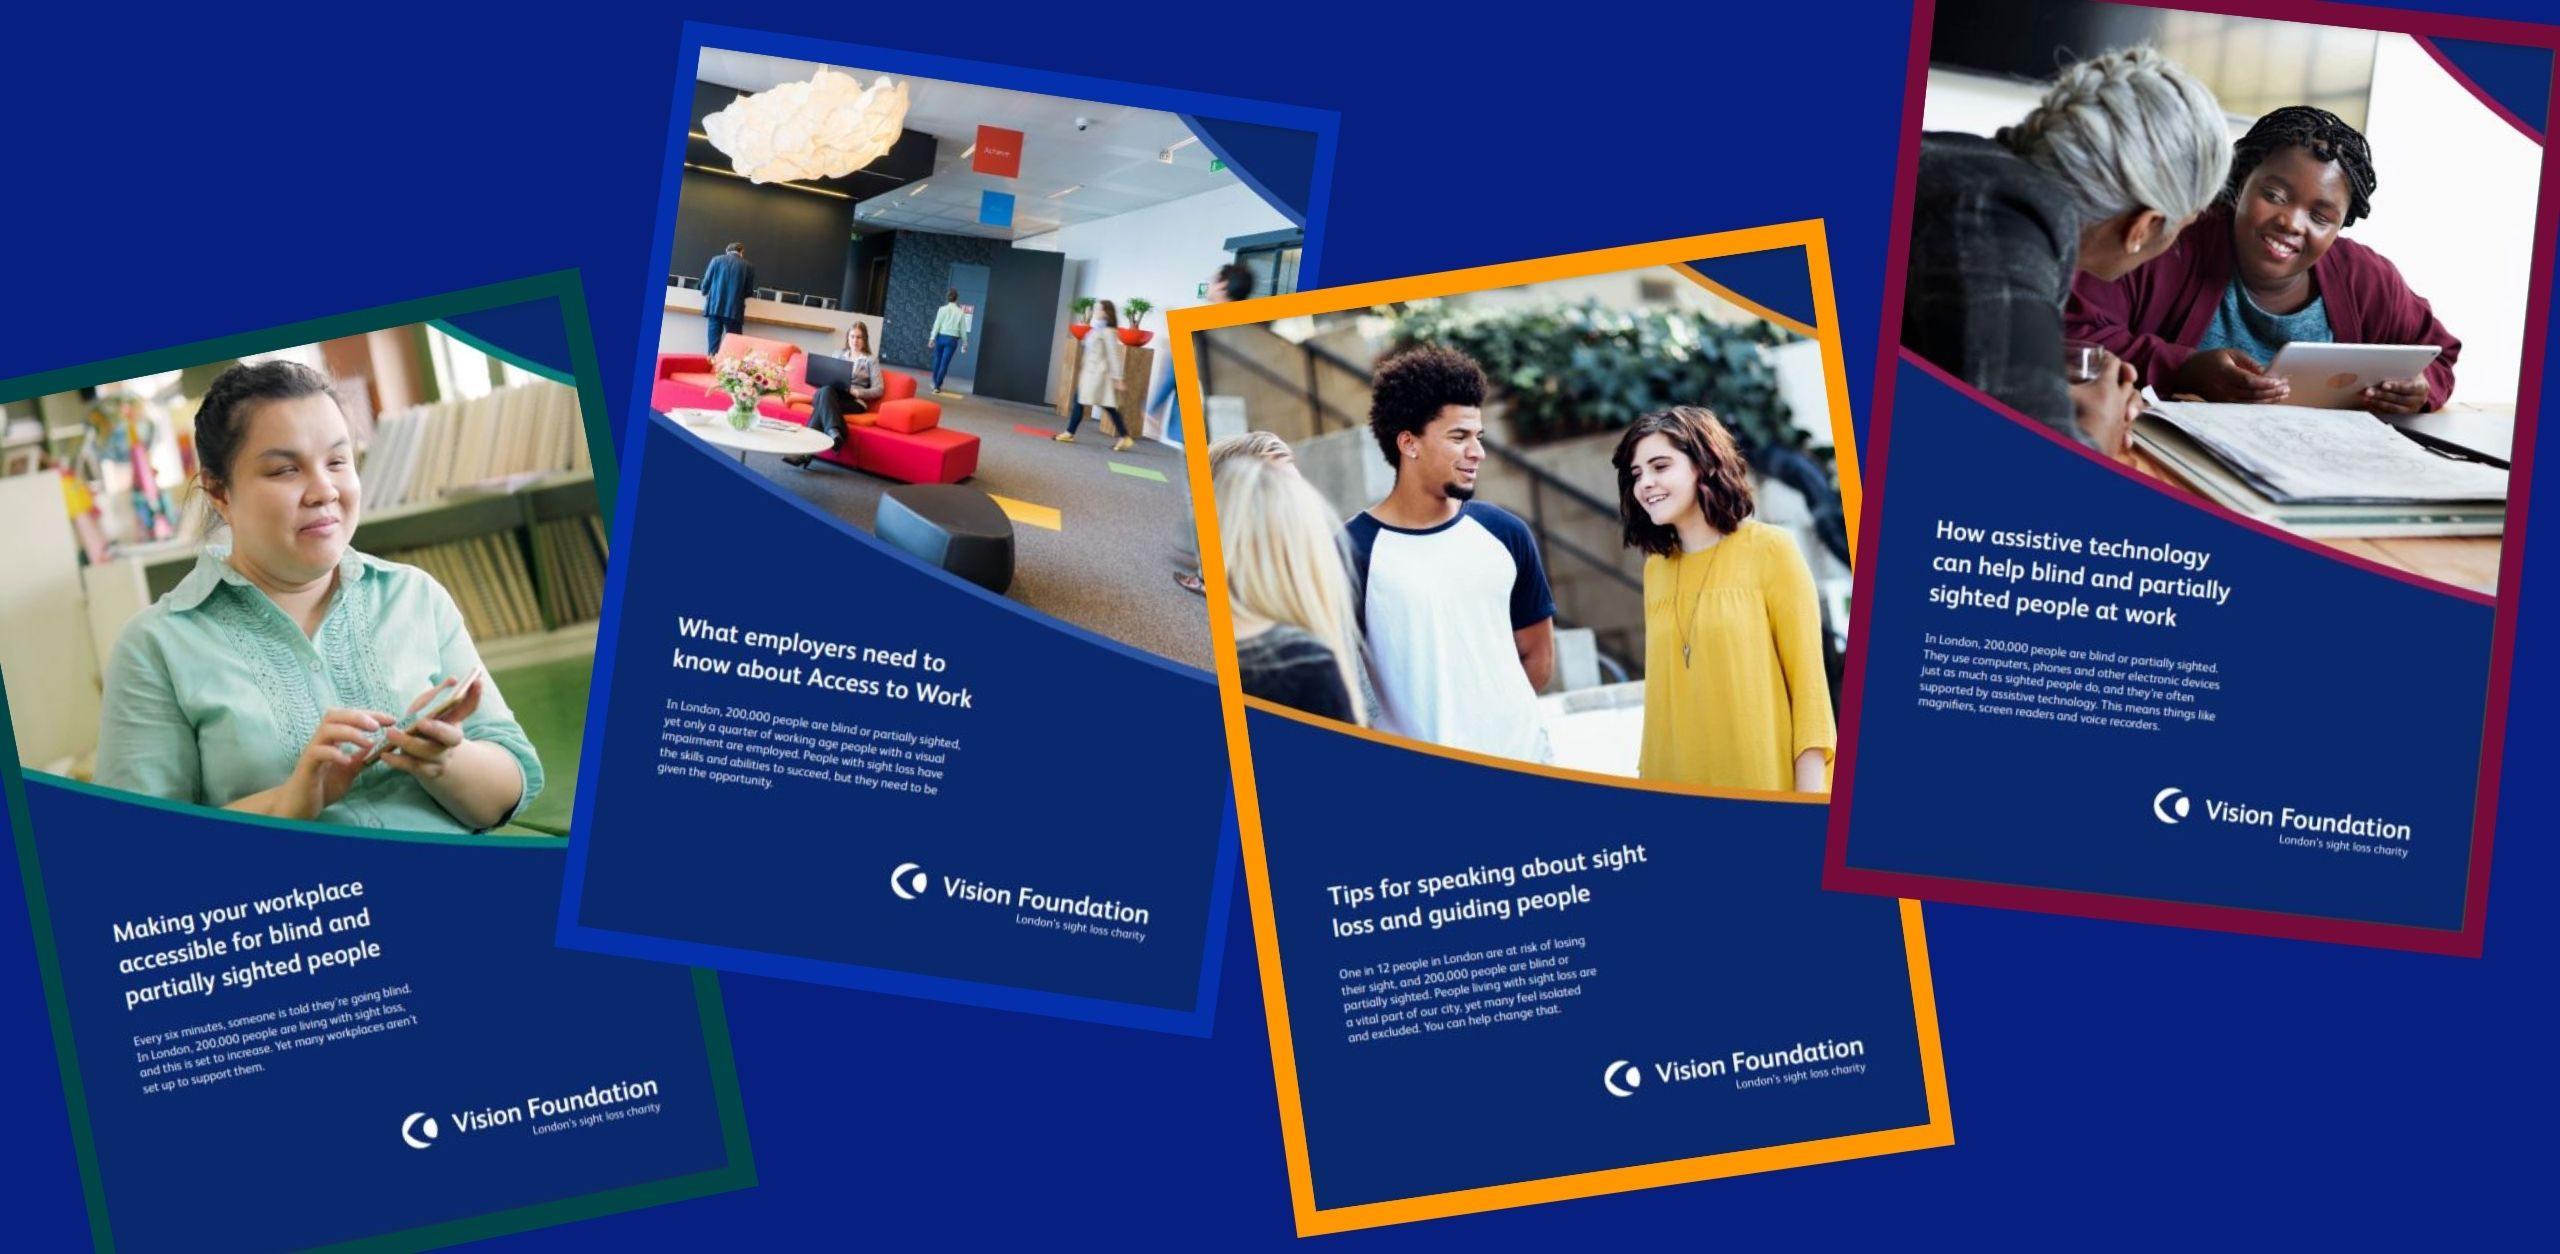 Copies of the Vision Foundation's employer factsheets are arranged on a blue background